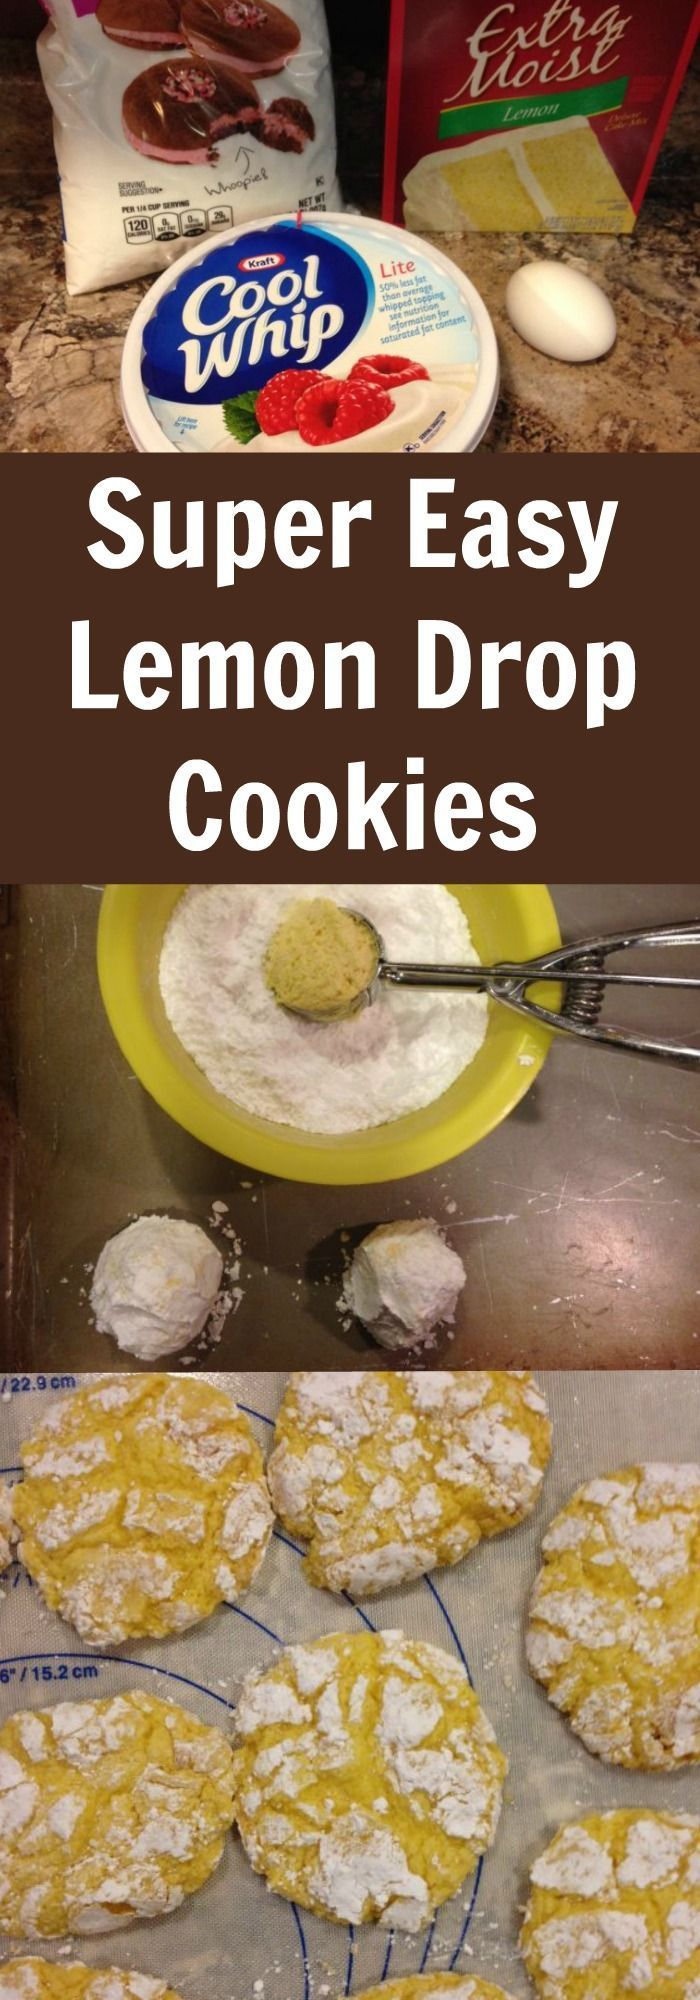 Super Easy Lemon Drop Cookie Recipe - I love these cookies!!